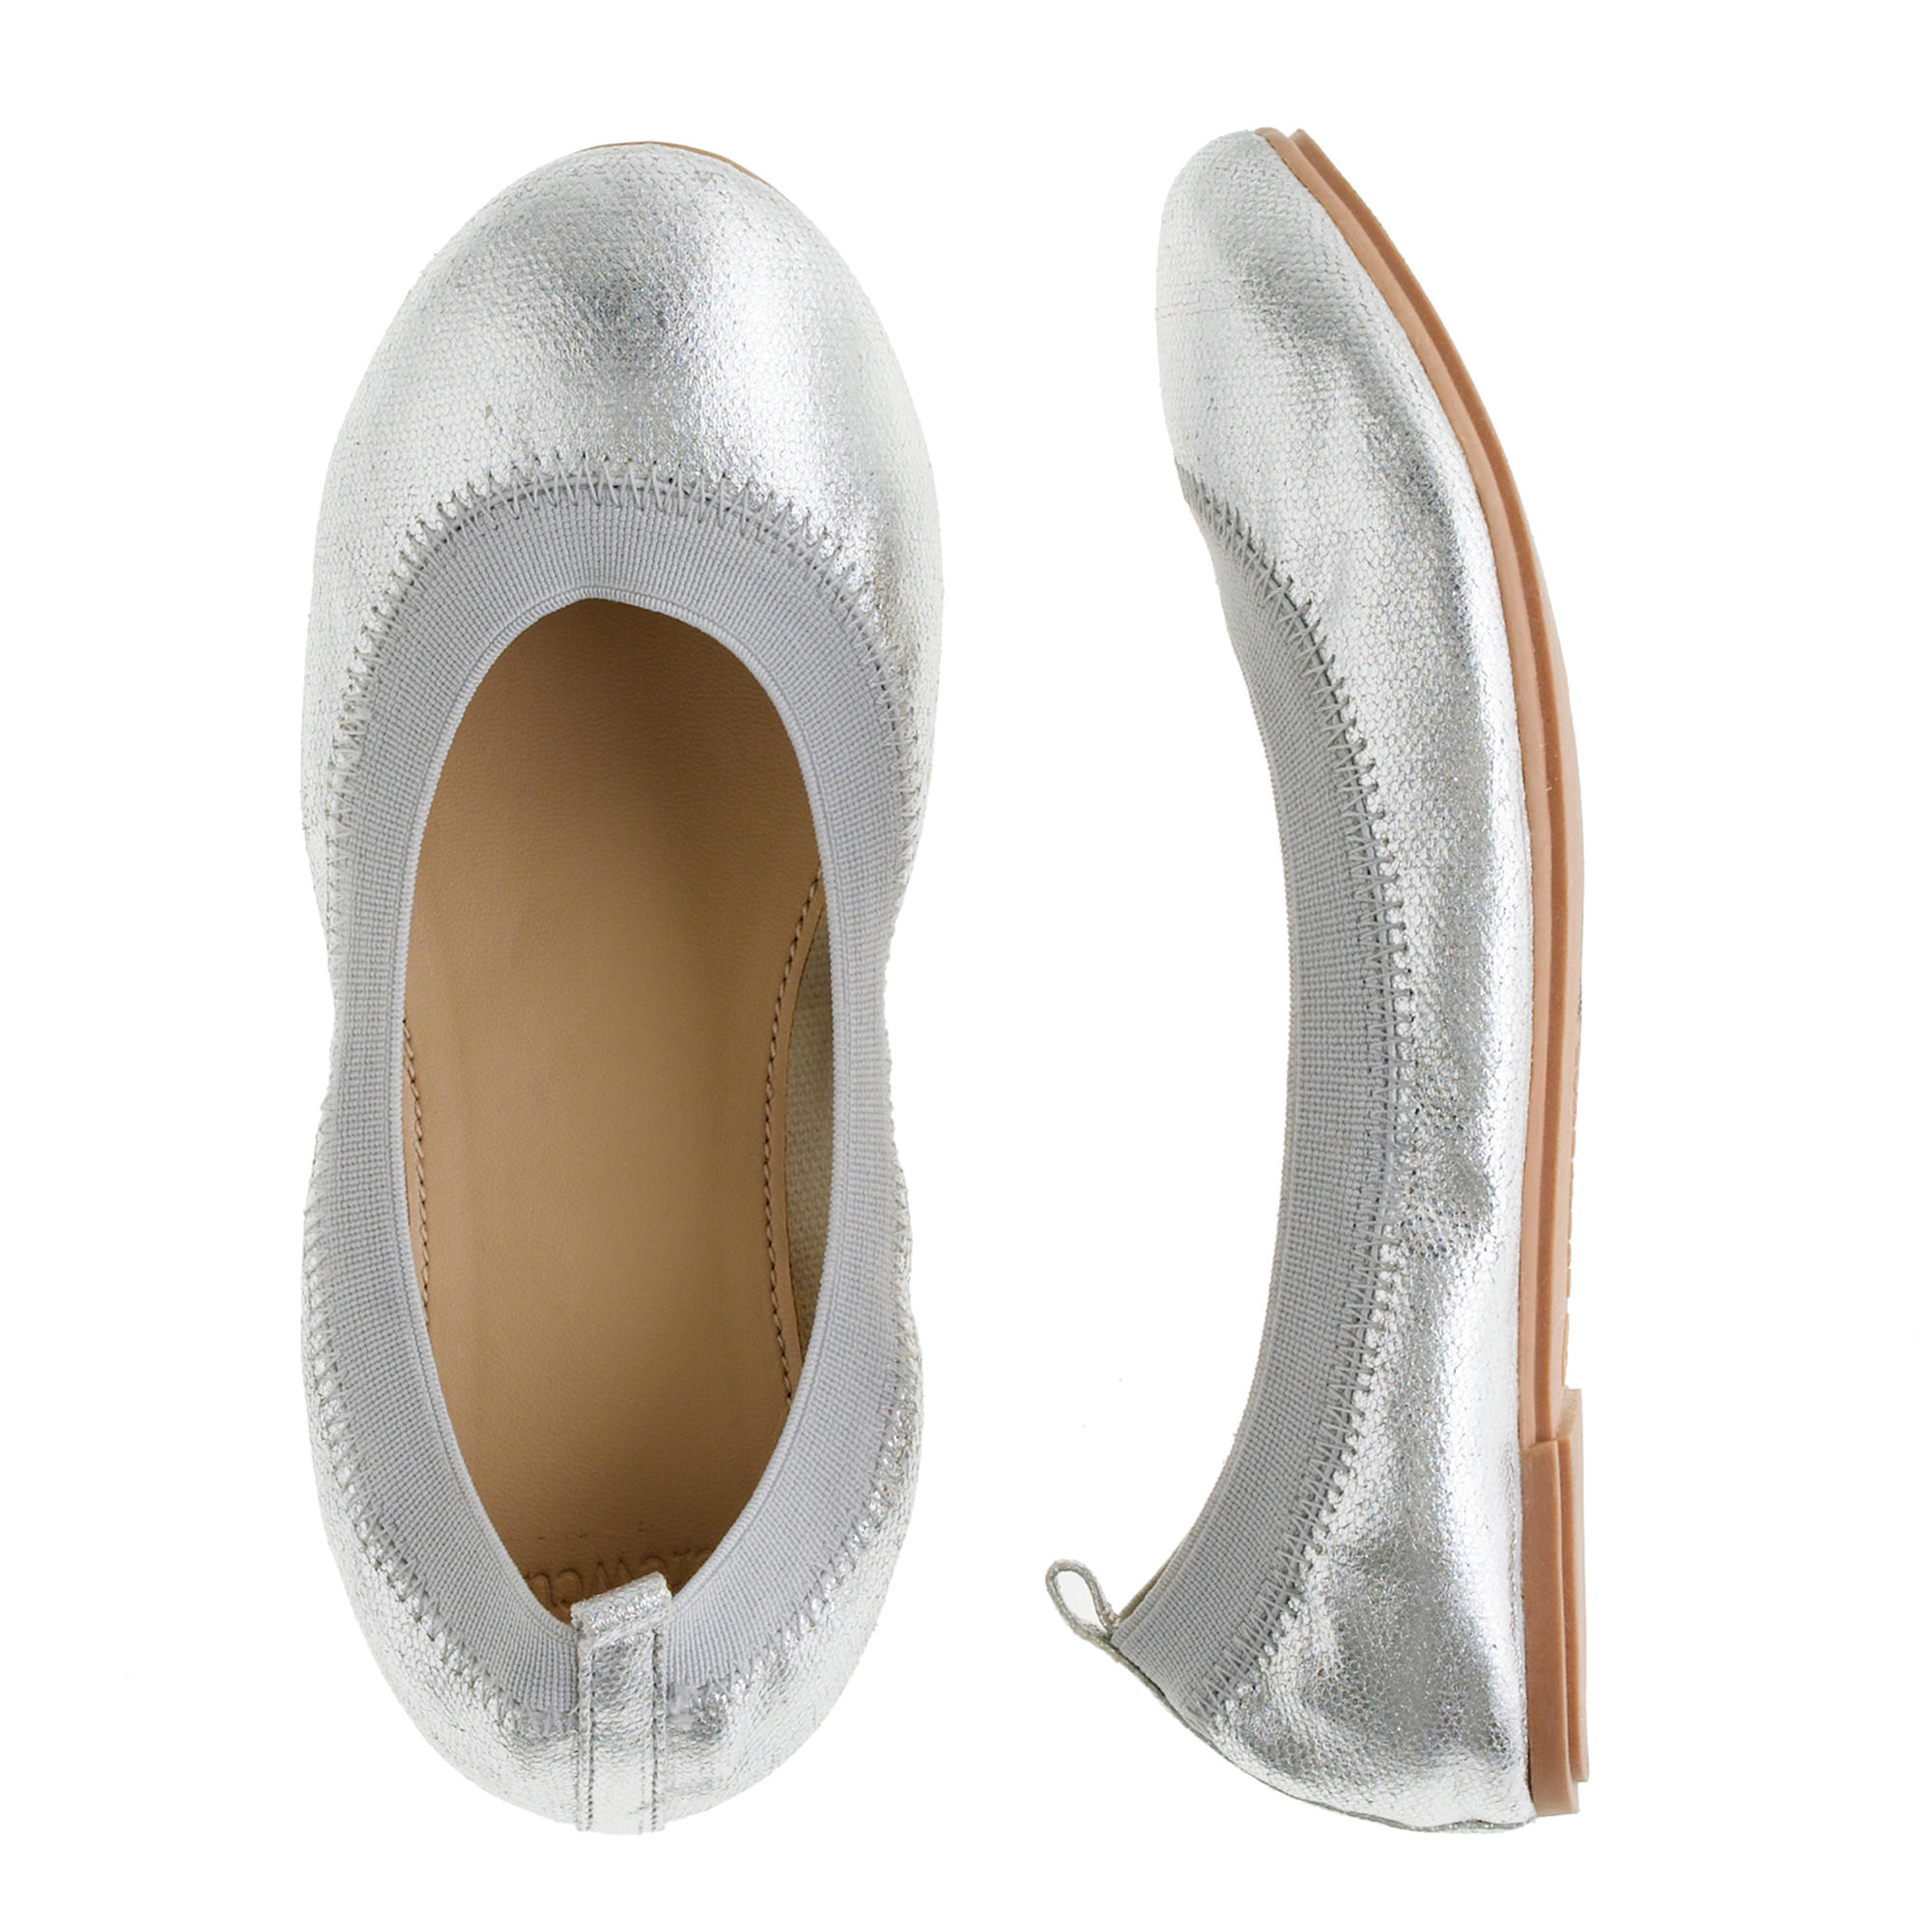 Find great deals on Girls Flats at Kohl's today! Sponsored Links Outside companies pay to advertise via these links when specific phrases and words are searched.